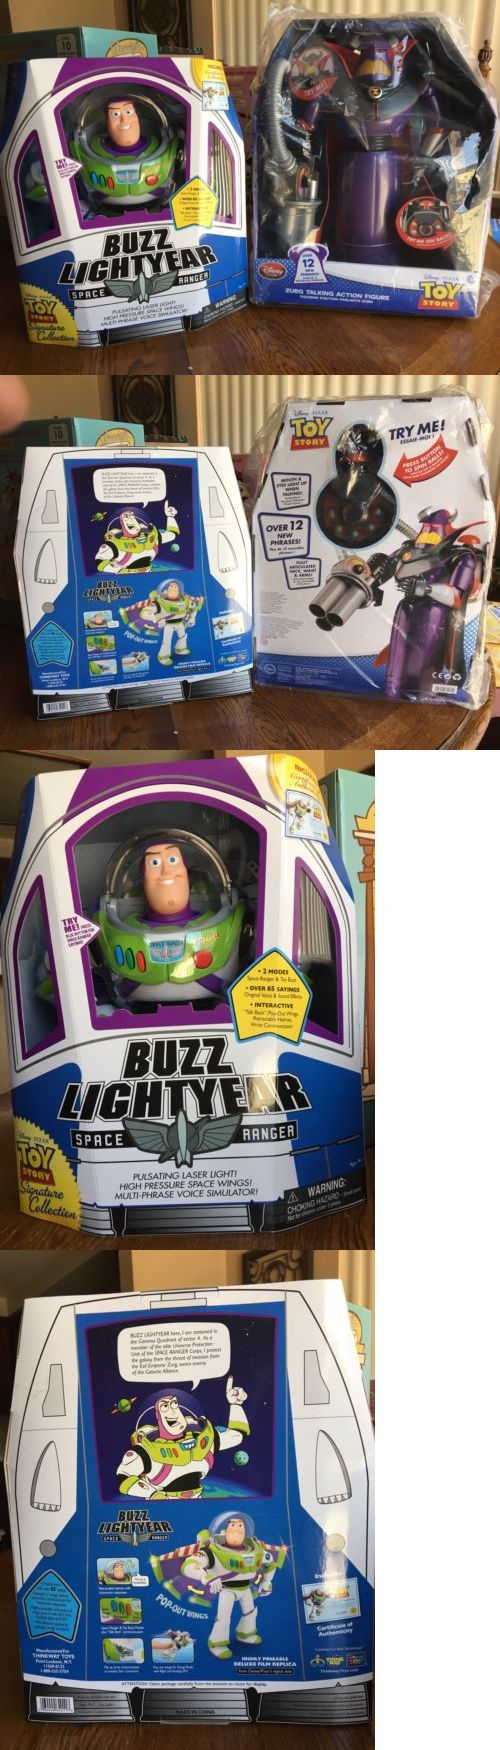 Toy Story 19223: New Talking Toy Story Signature Collection Buzz Lightyear And Disney Parks Zurg! -> BUY IT NOW ONLY: $120 on eBay!